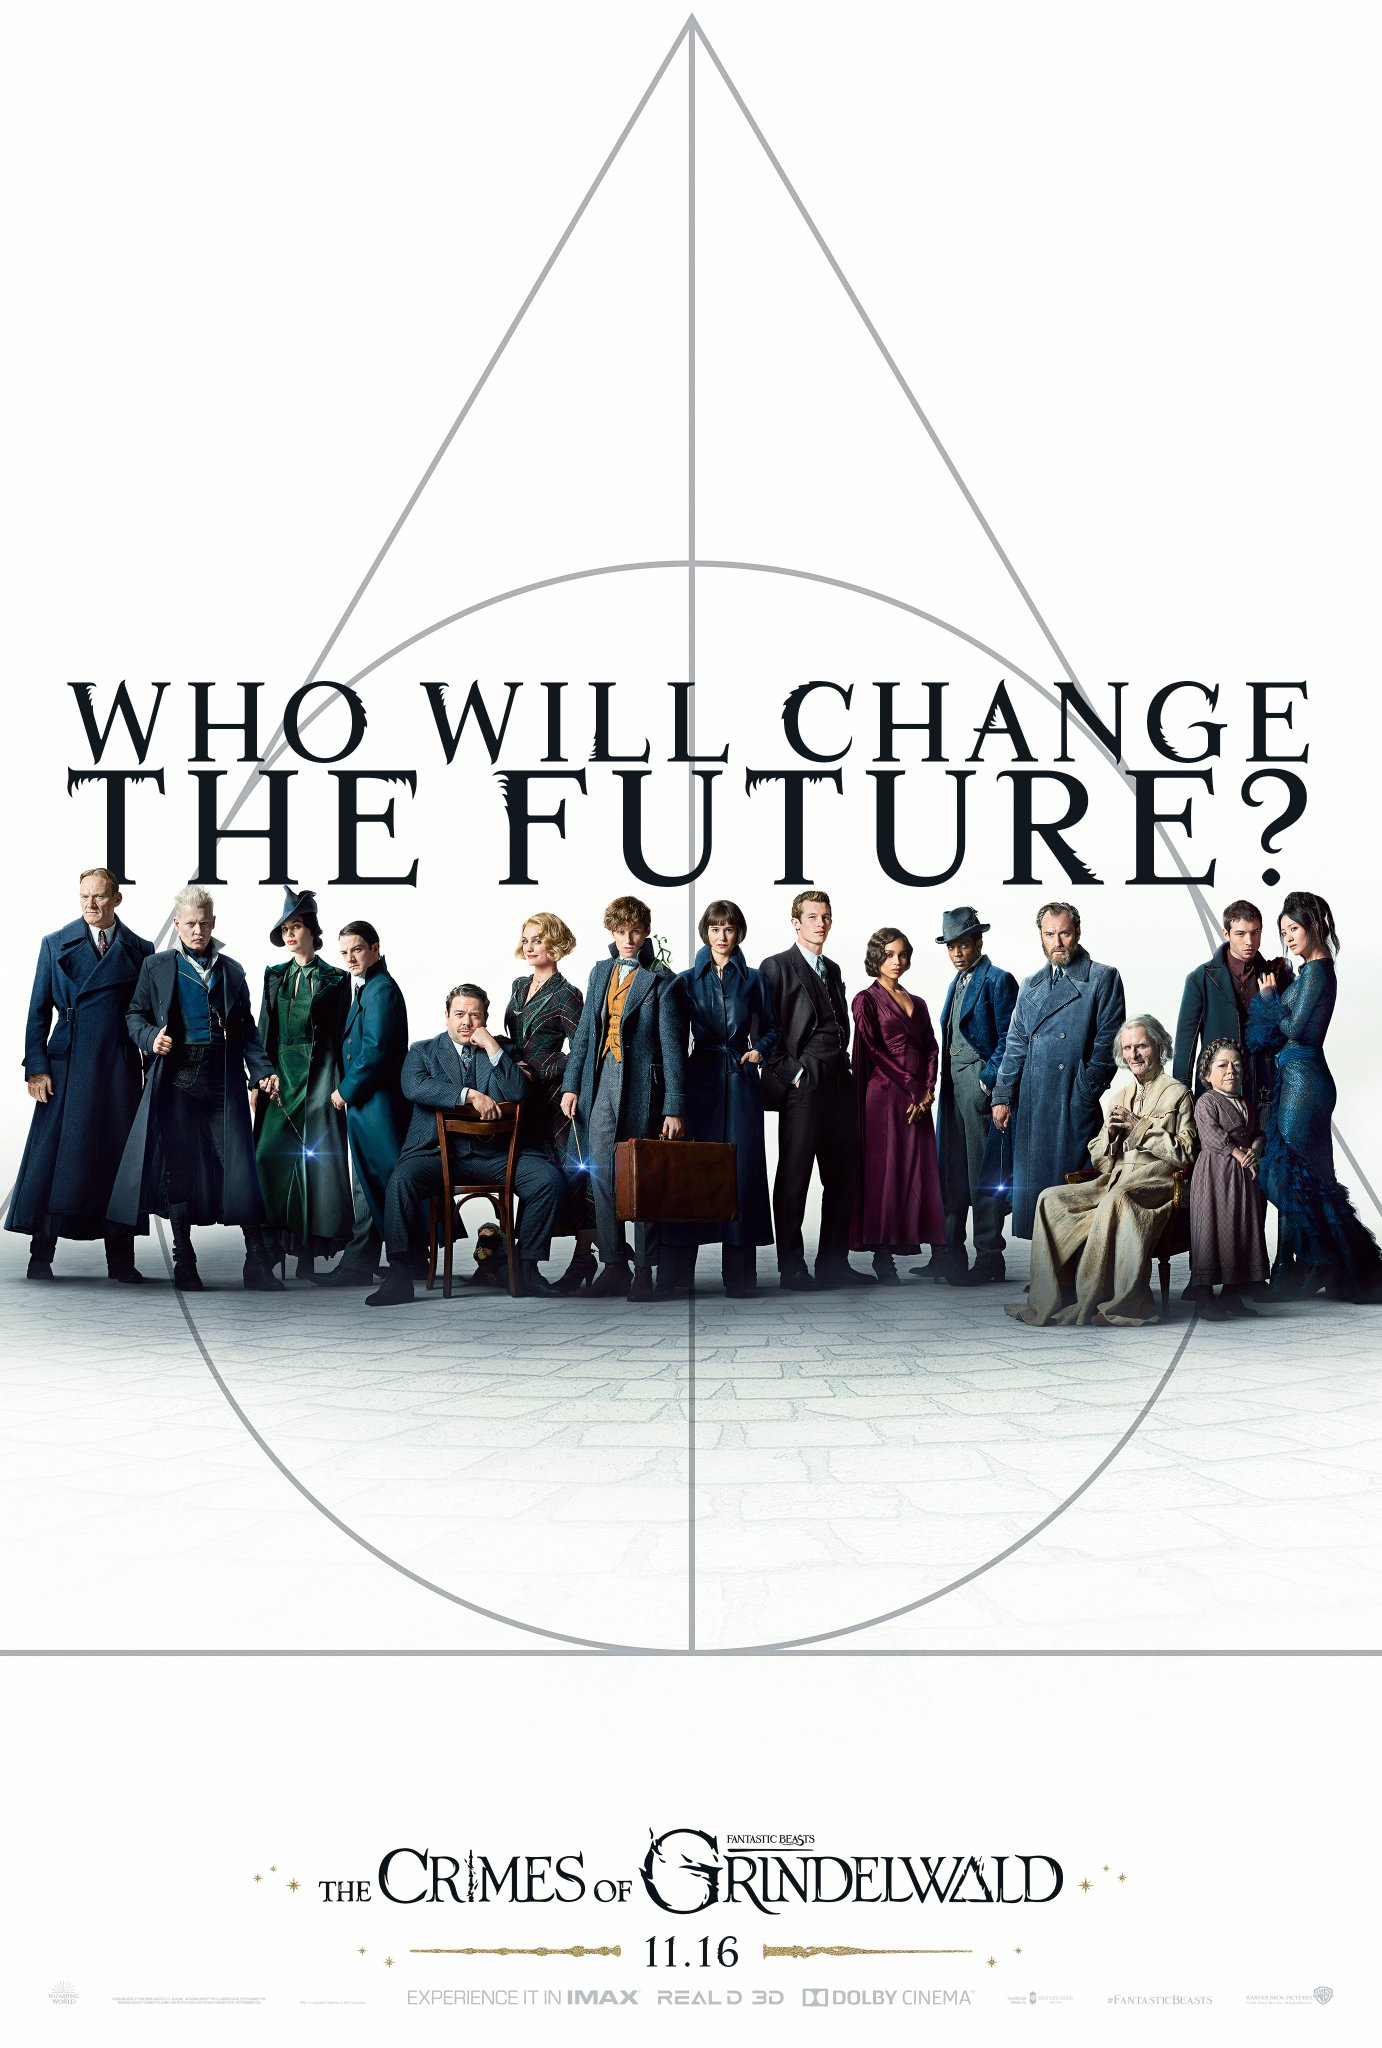 fantastic beasts the crimes of grindelwald poster - Trailer final de Animales Fantásticos: Los Crímenes de Grindelwald